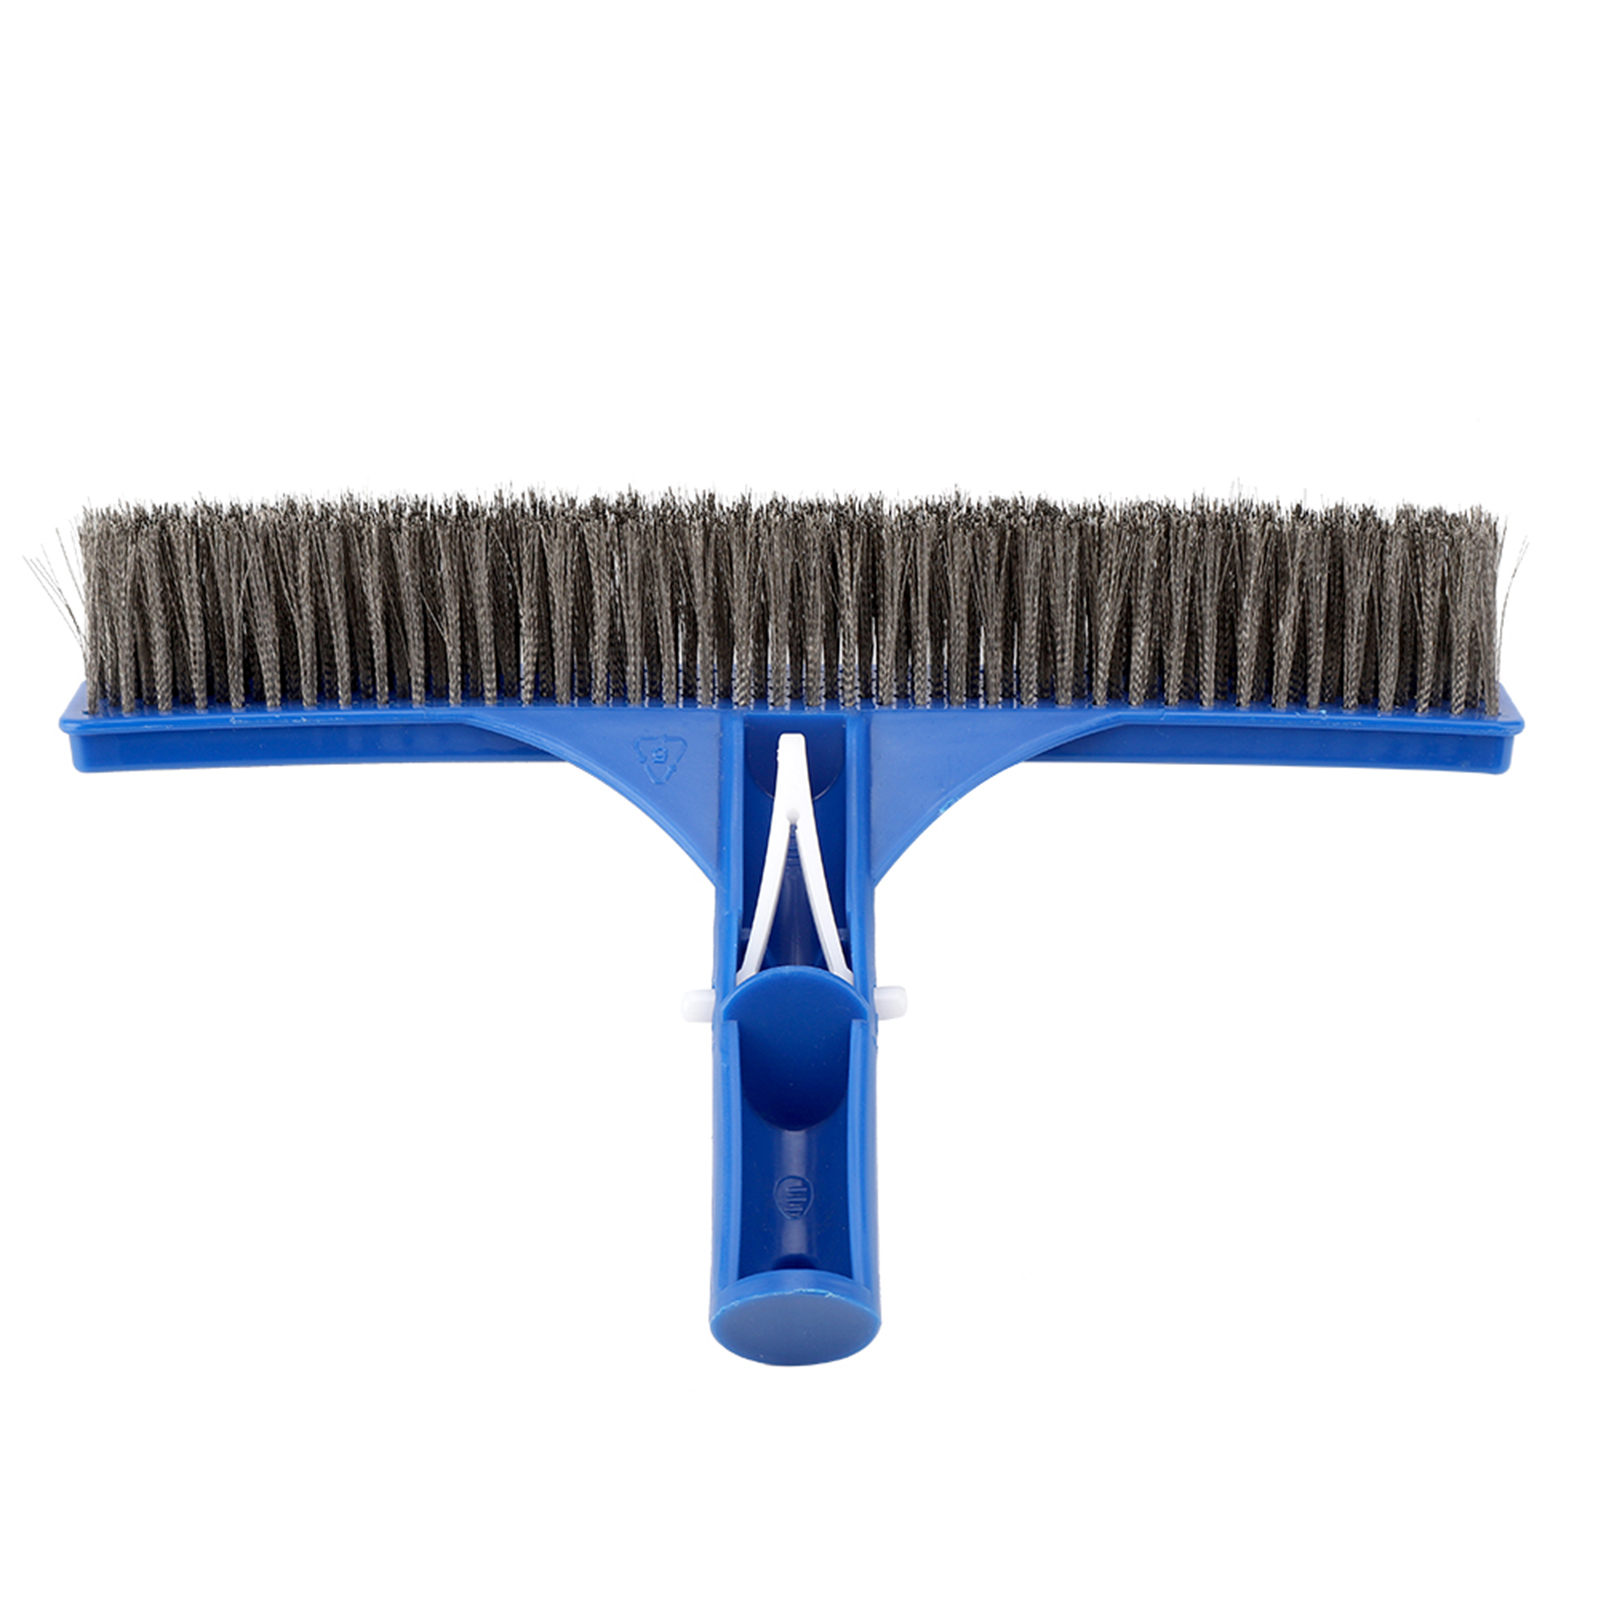 Telescopic Handle Swimming Pool Cleaning Brush Head Heavy